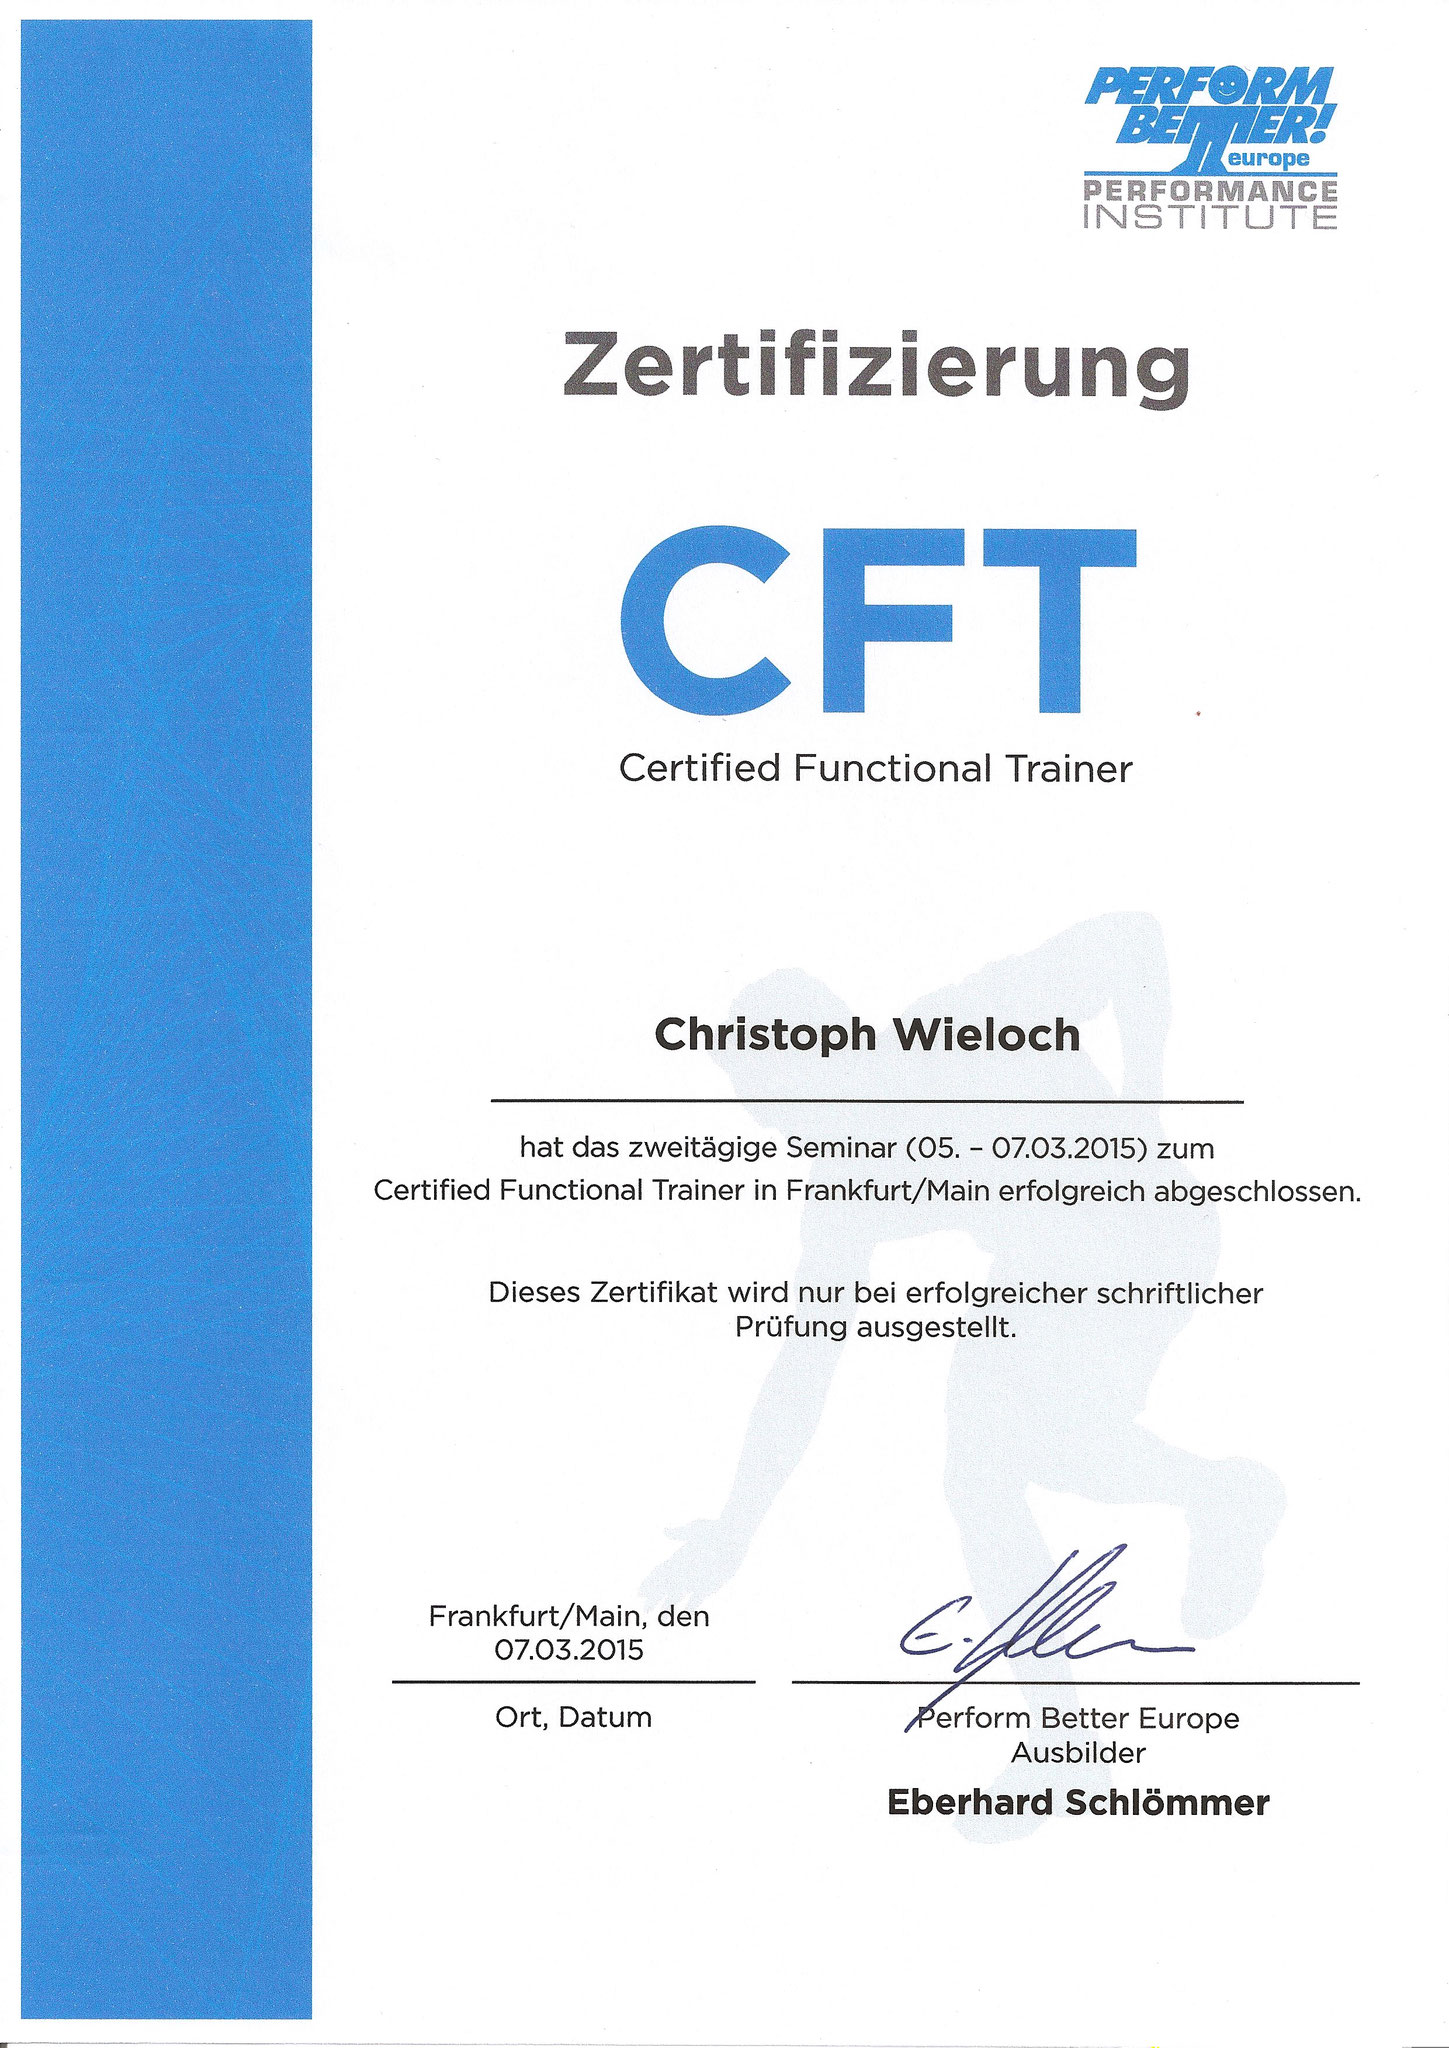 Functional Trainer Christoph Wieloch